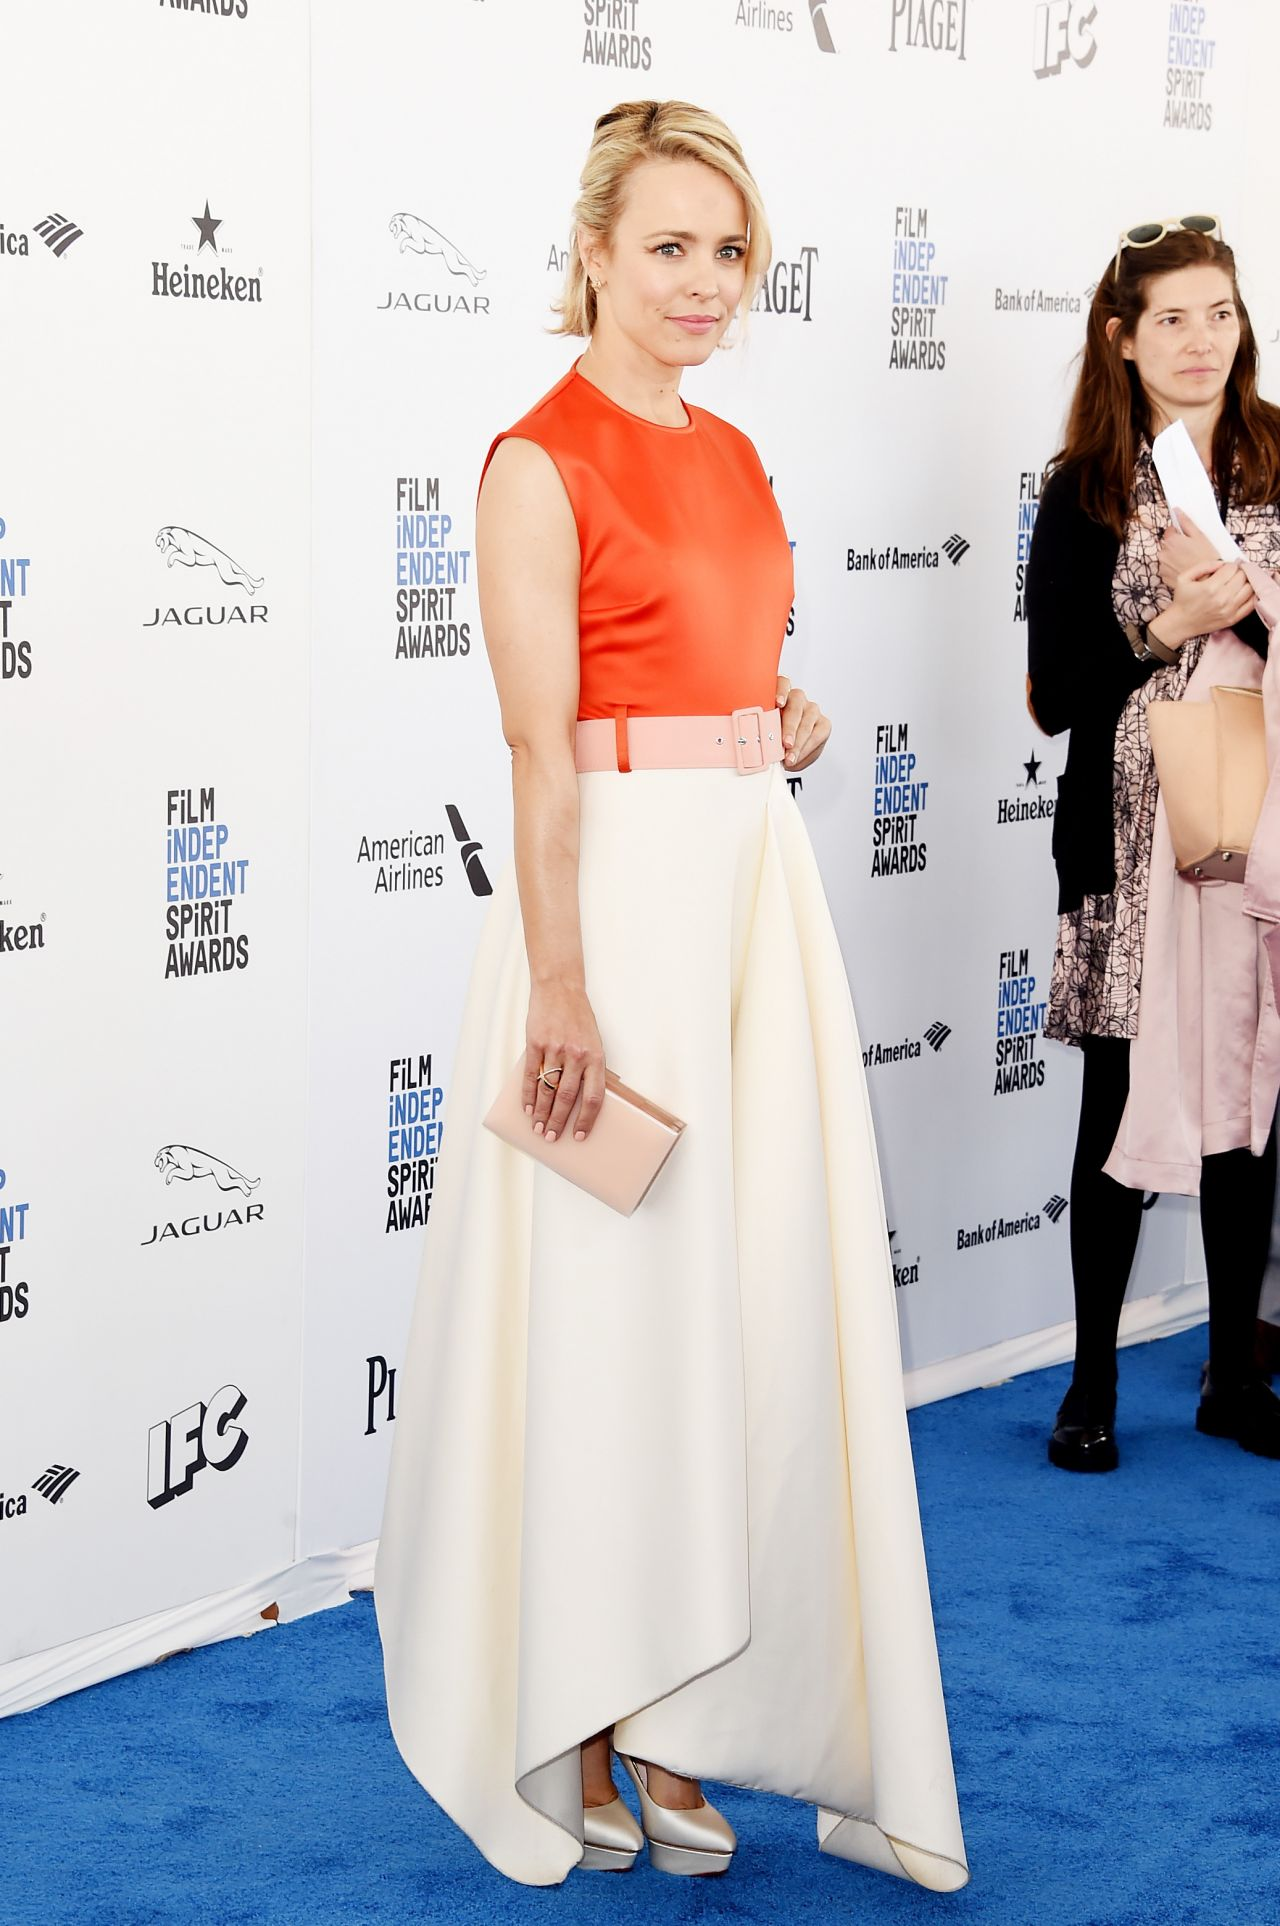 rachel-mcadams-2016-film-independent-spirit-awards-in-santa-monica-ca-5